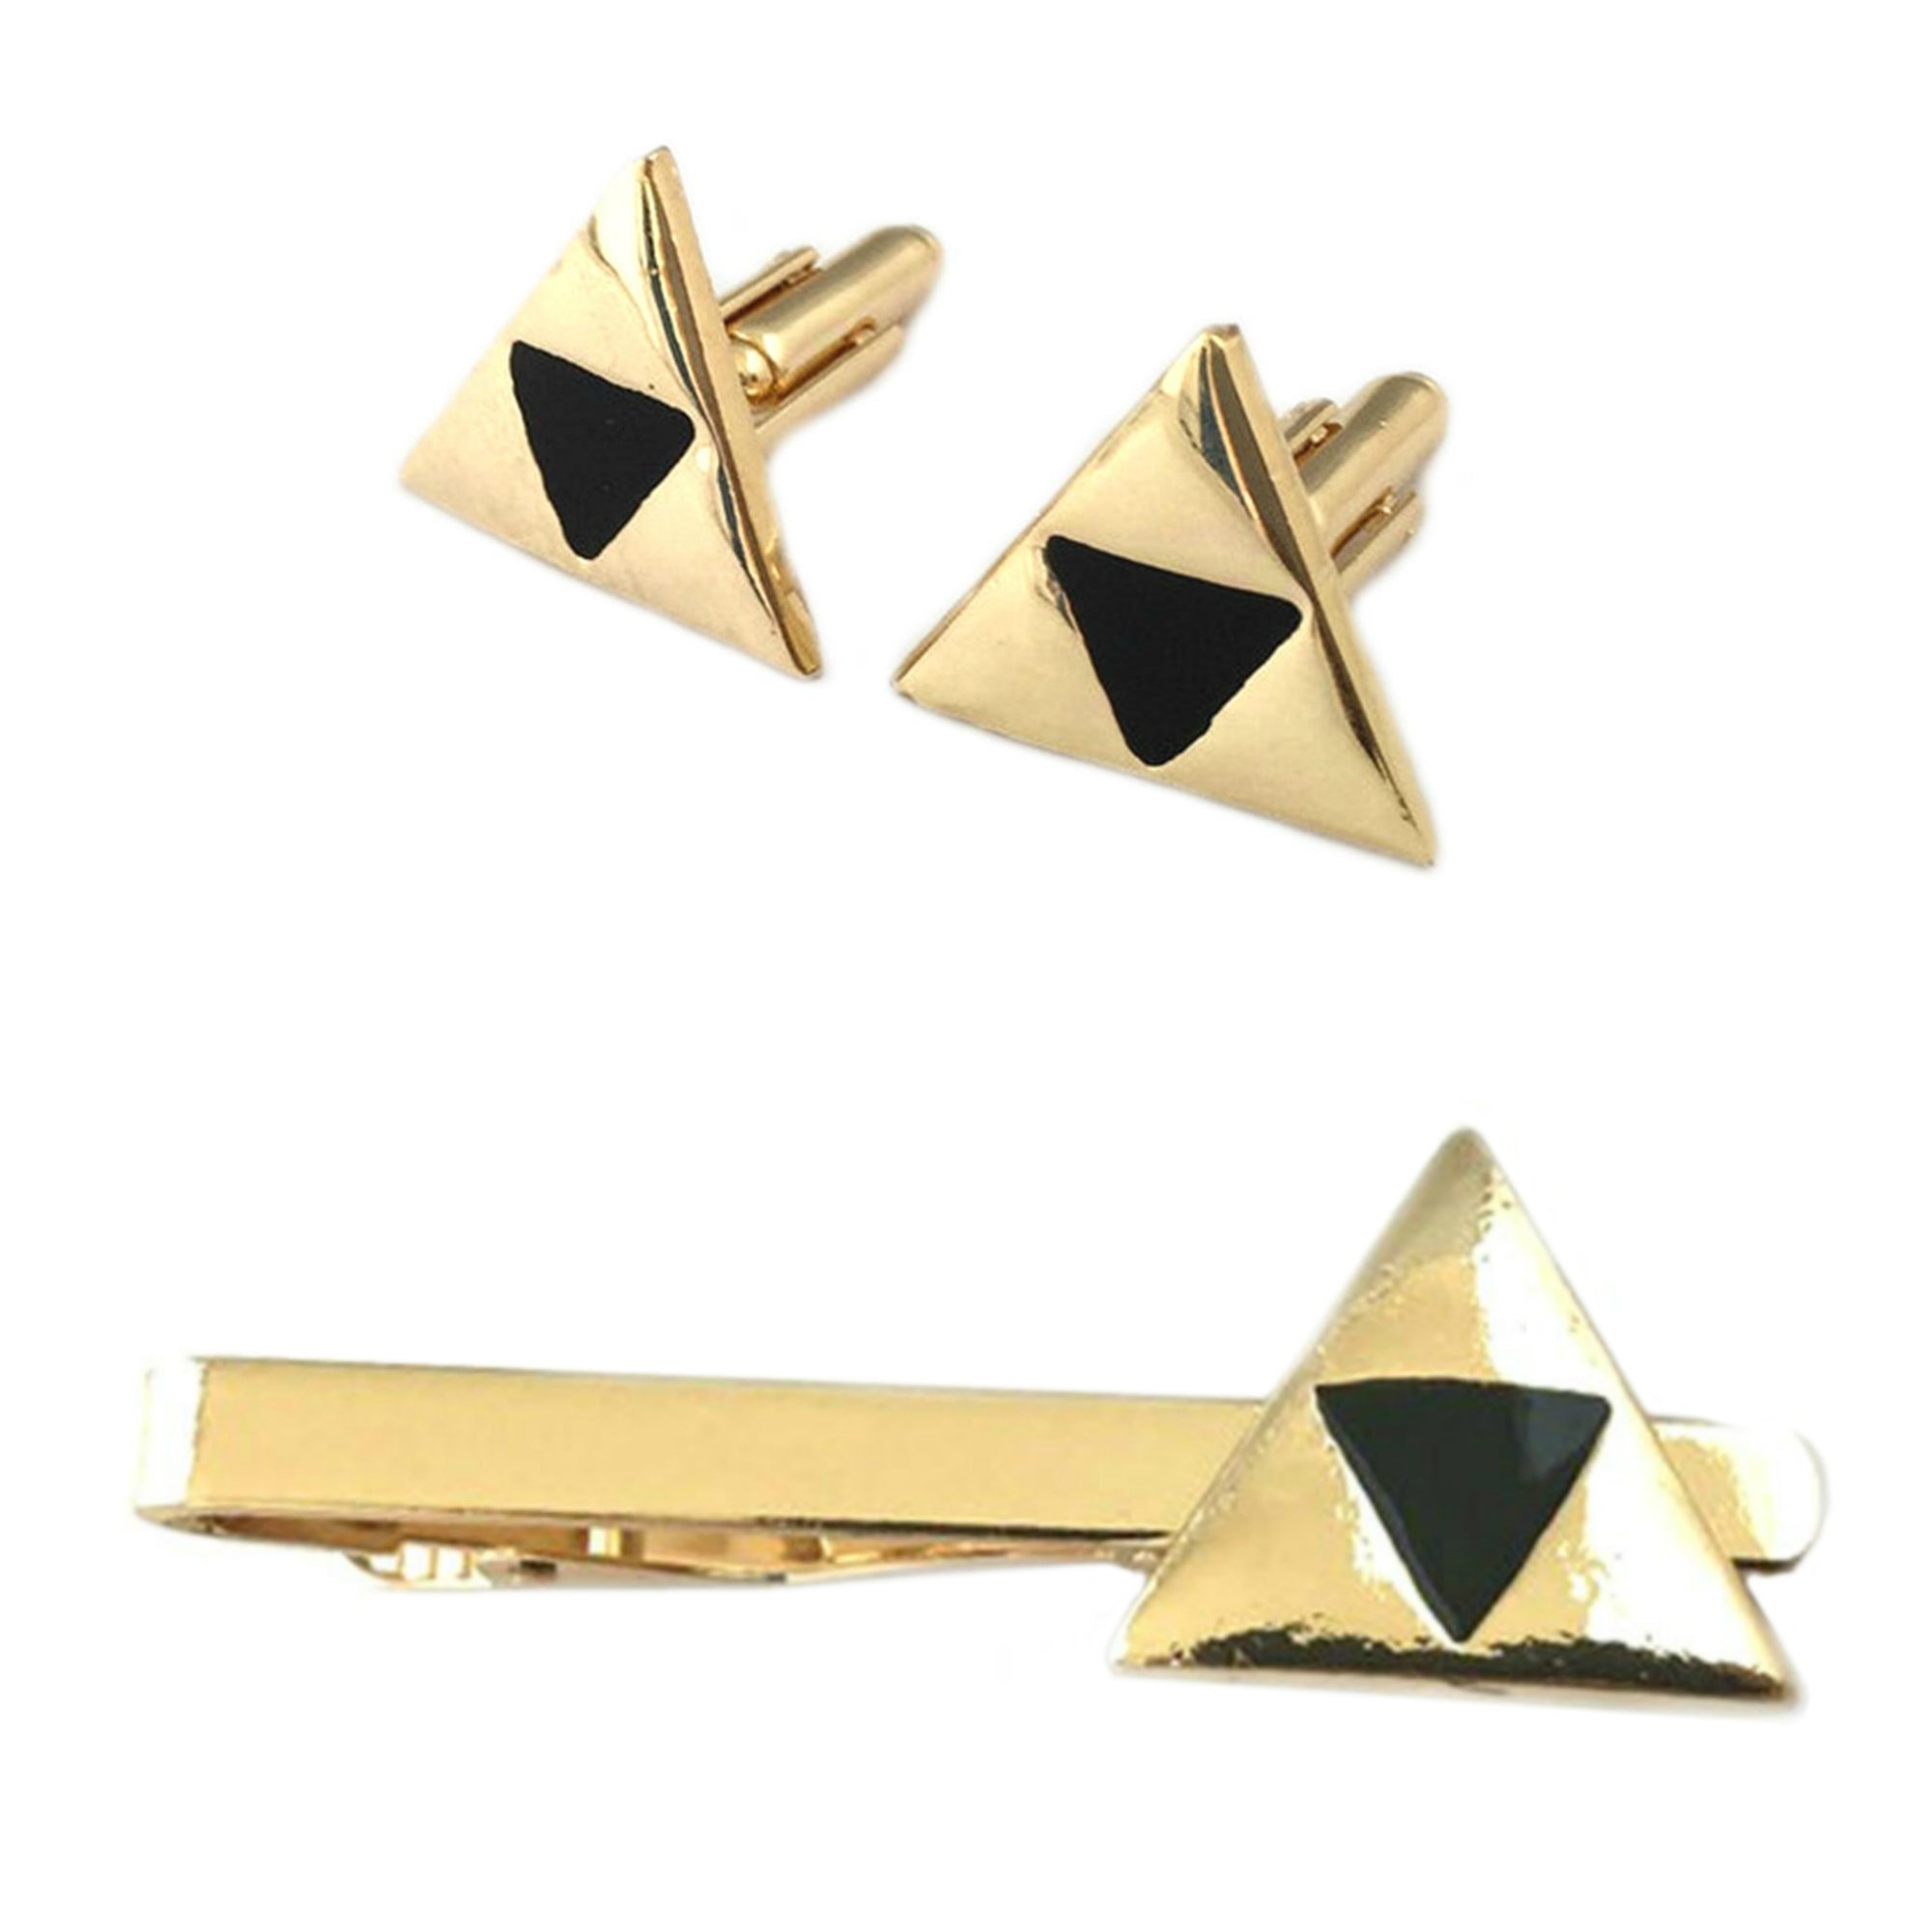 Outlander Legend of Zelda Triforce Cufflink & Tiebar - New 2018 Superhero Games - Set of 2 Wedding Logo w/Gift Box